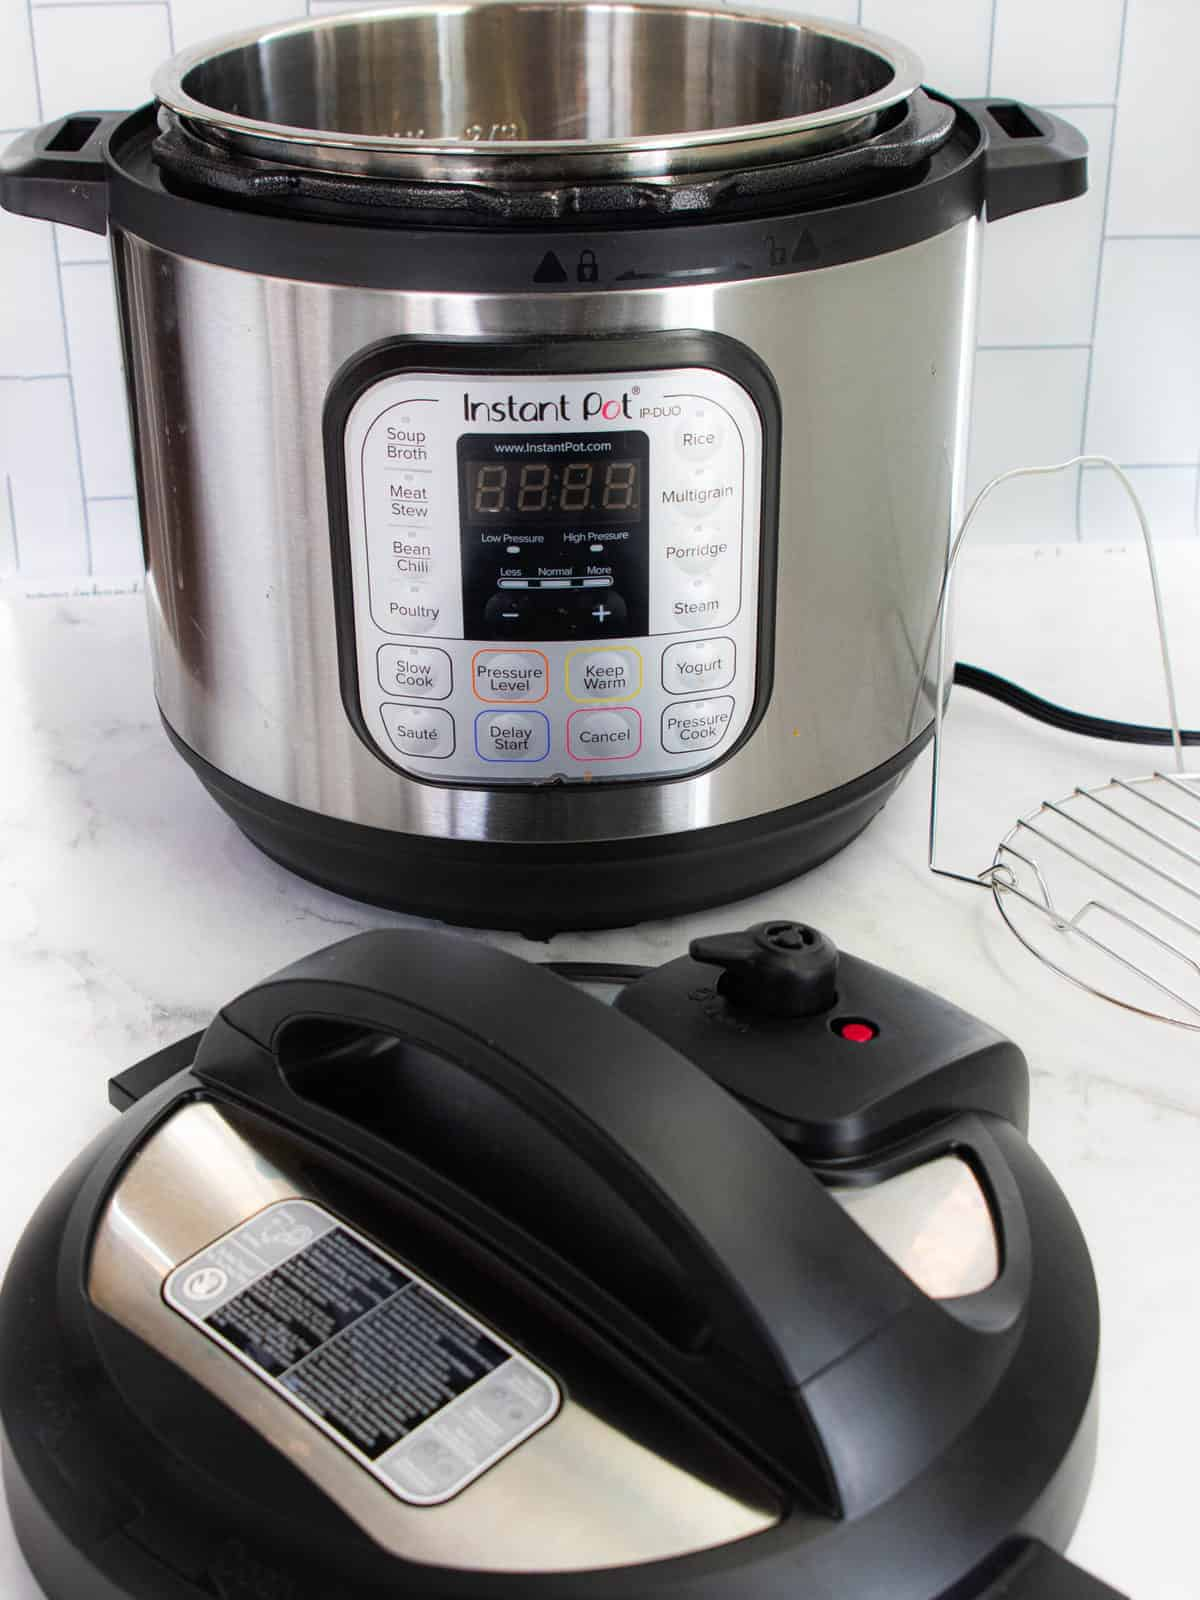 Instant pot shown on a white surface with the lid off.